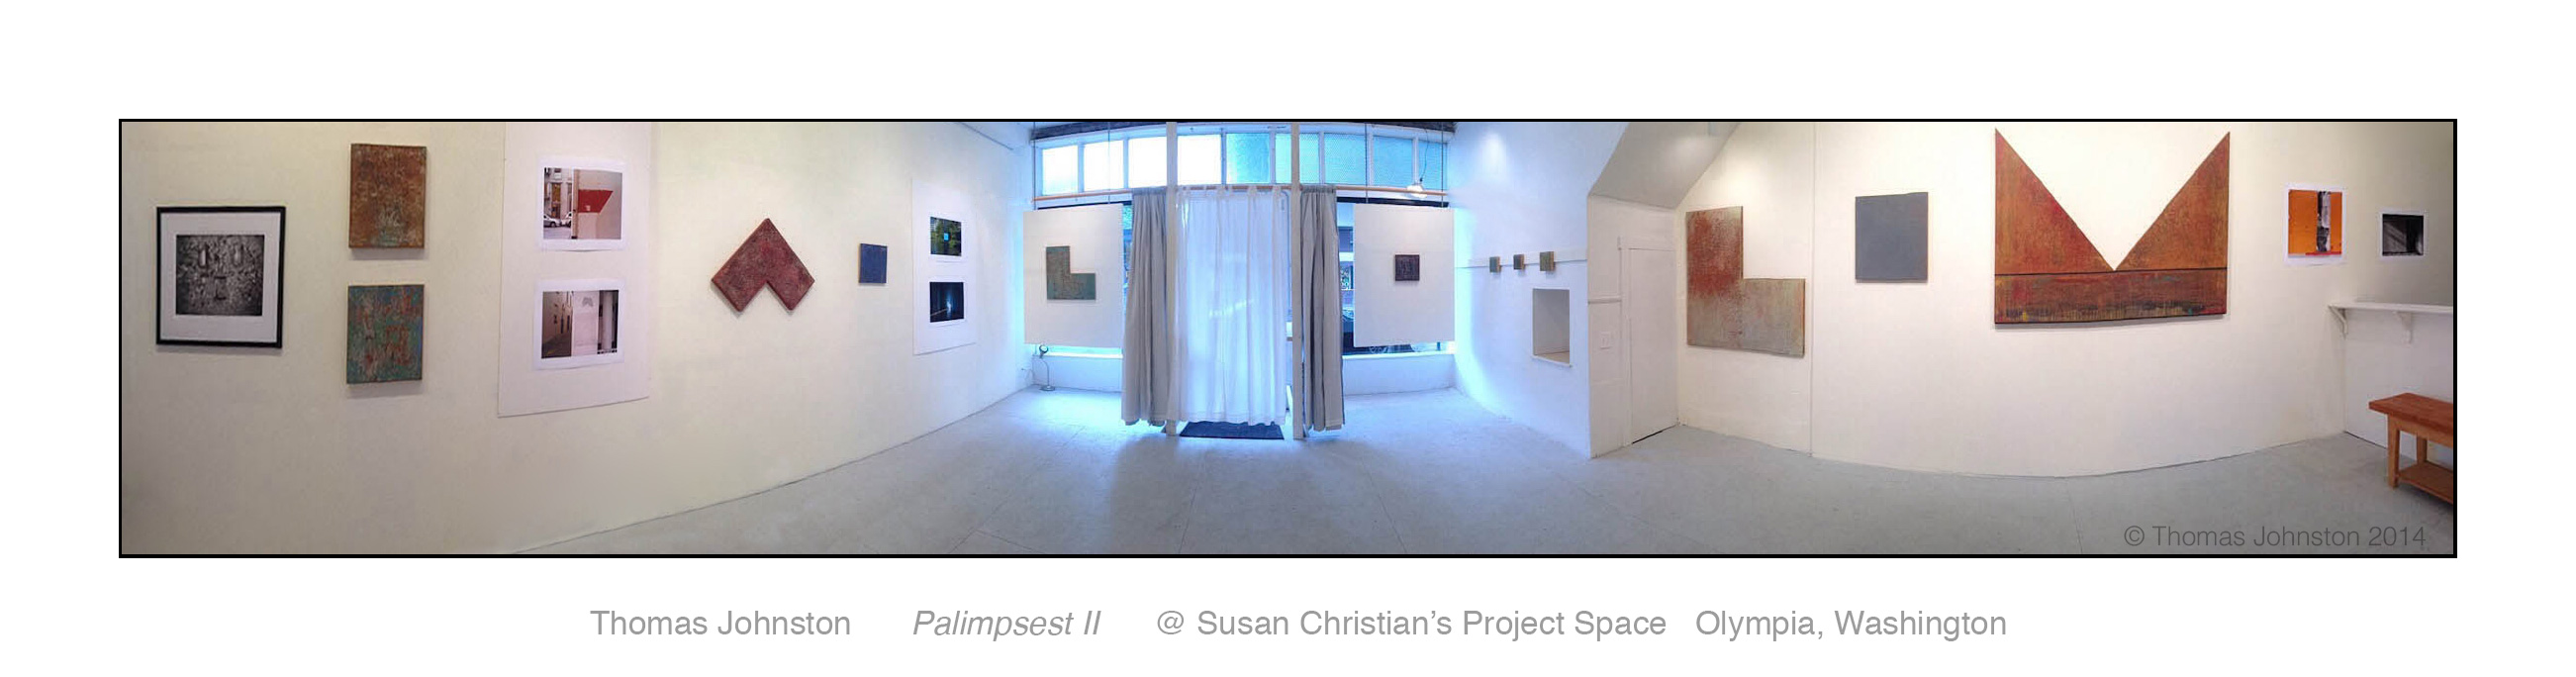 Palimpsest II Installation Overview